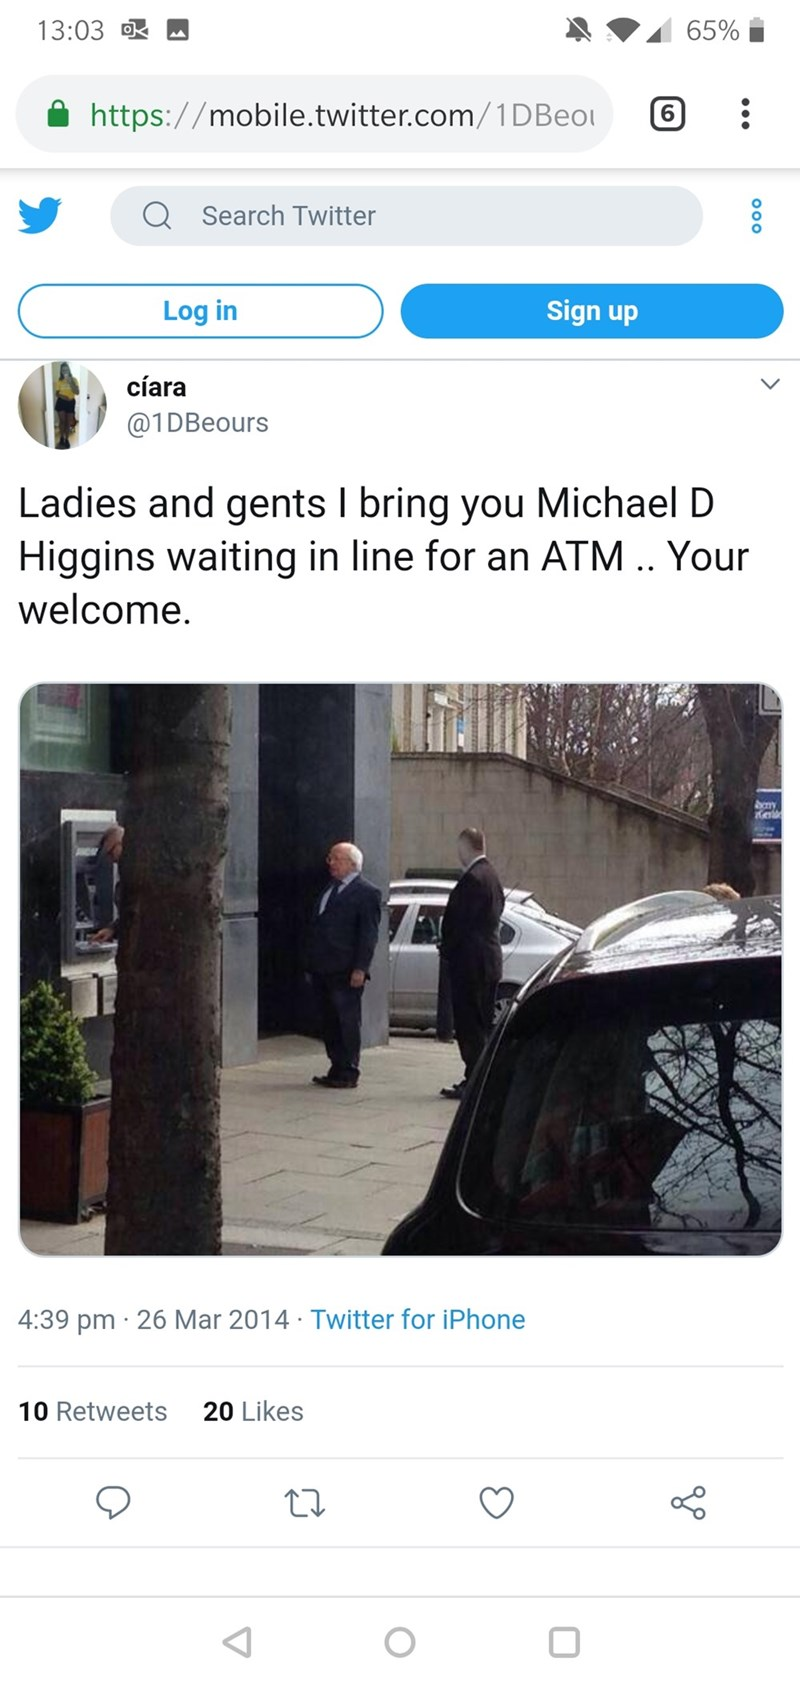 Tweet - Ladies and gents I bring you Michael D Higgins waiting in line for an ATM. Your welcome.